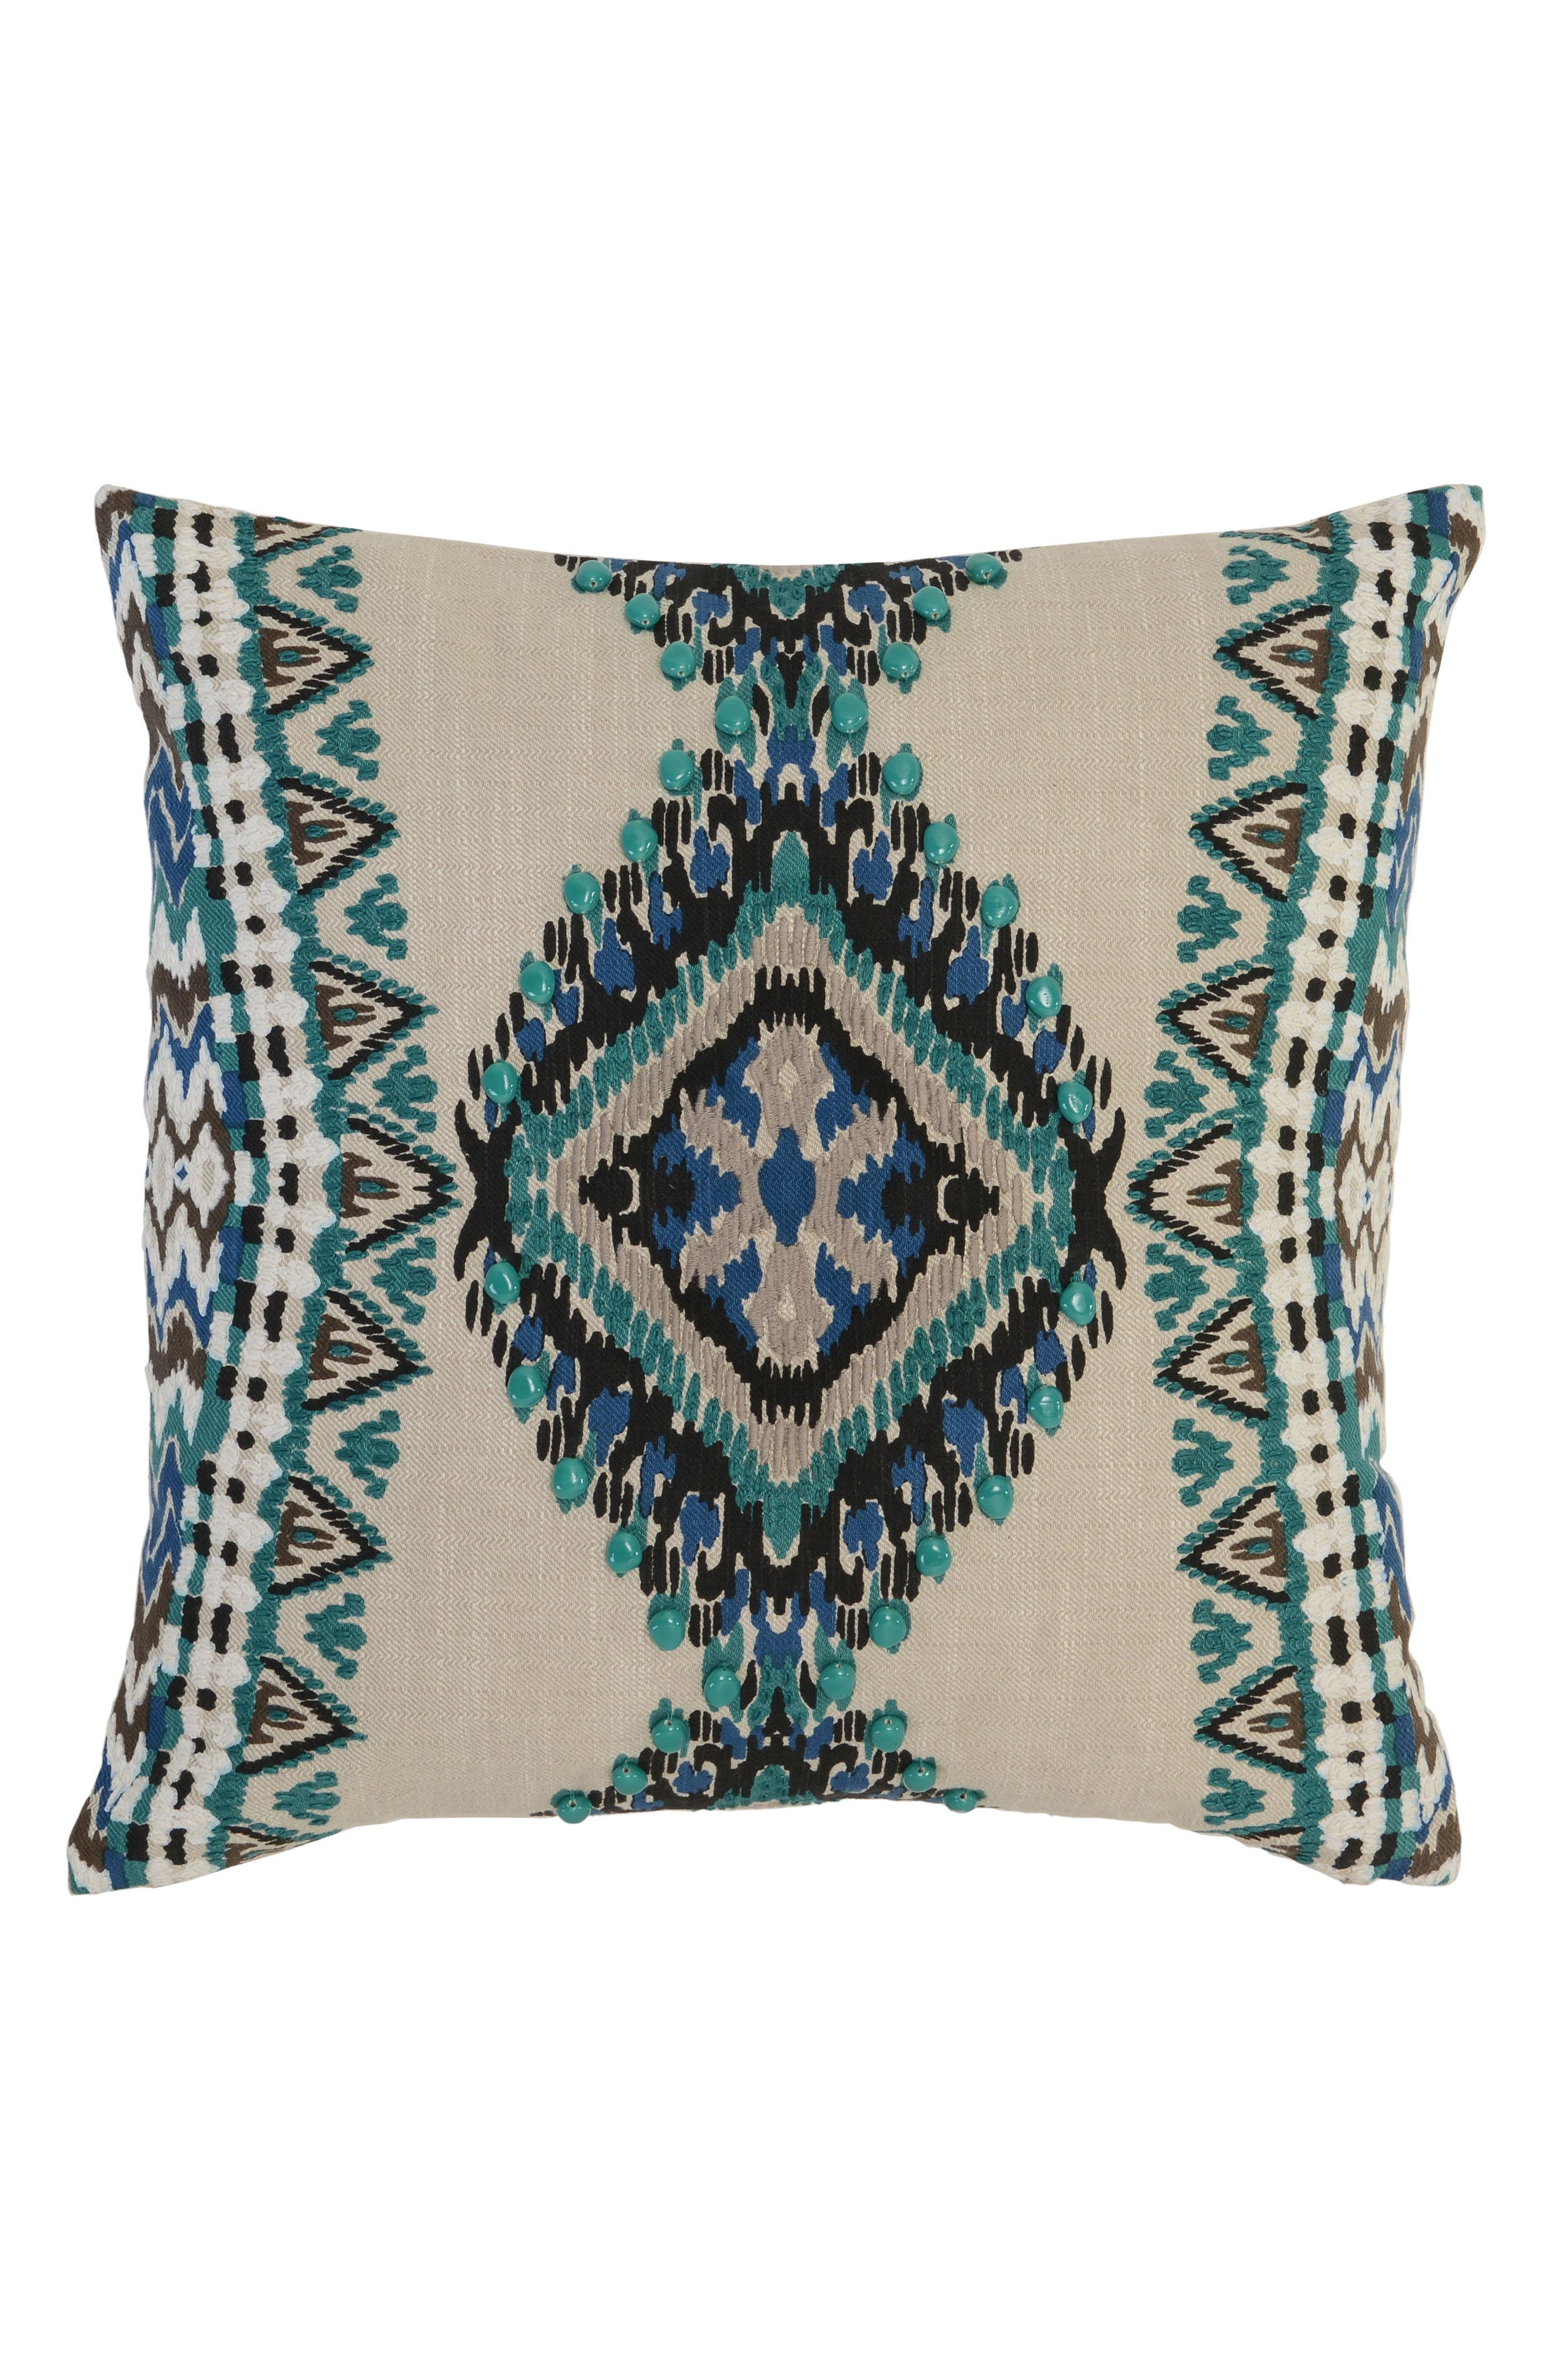 Chita Accent Pillow,                             Main thumbnail 1, color,                             TEAL/ IVORY